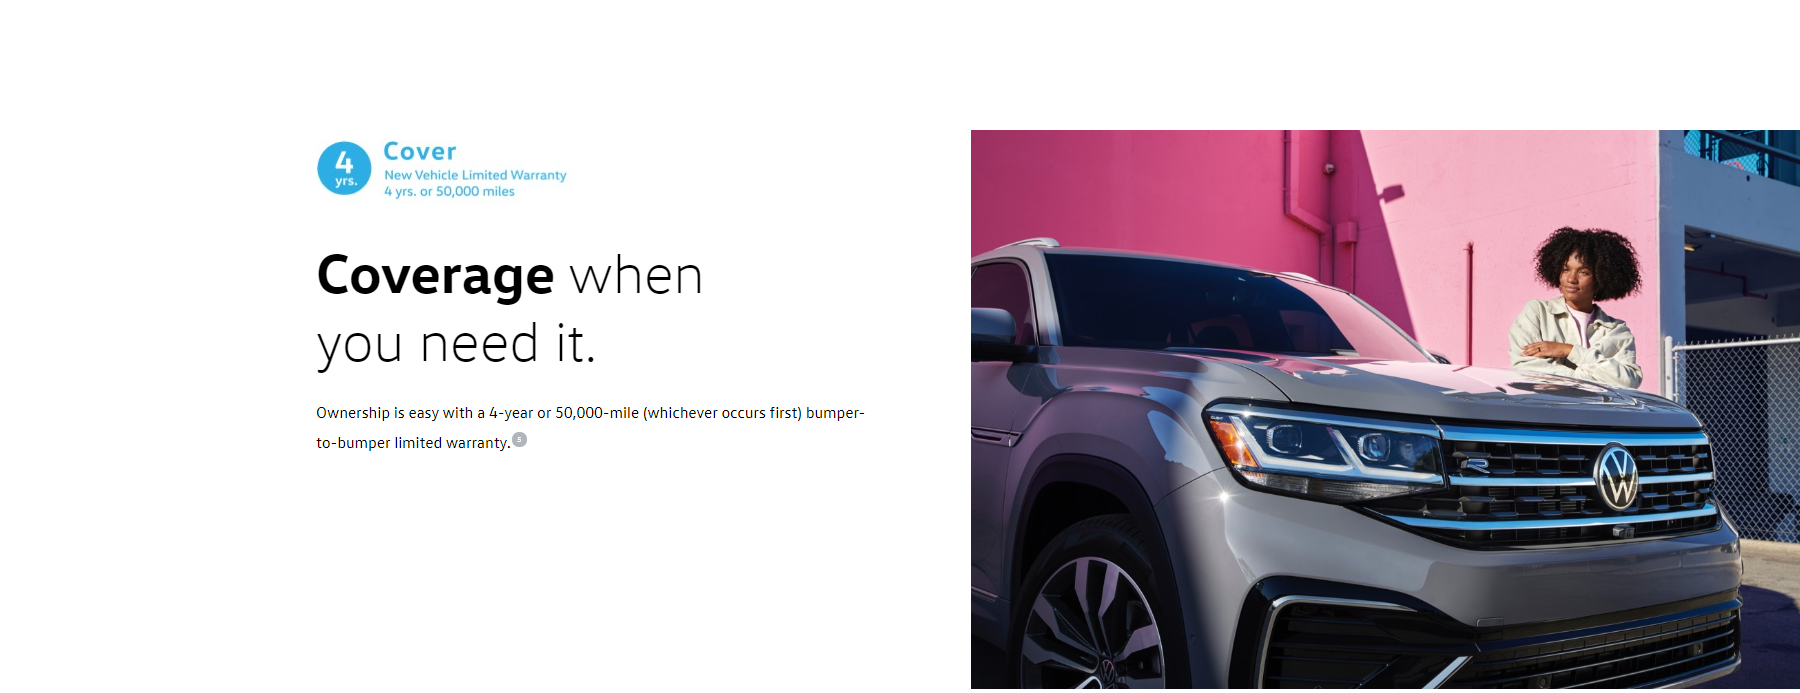 Coverage when you need it. Ownership is easy with a 4-year or 50,000-mile (whichever occurs first) bumper-to-bumper limited warranty.